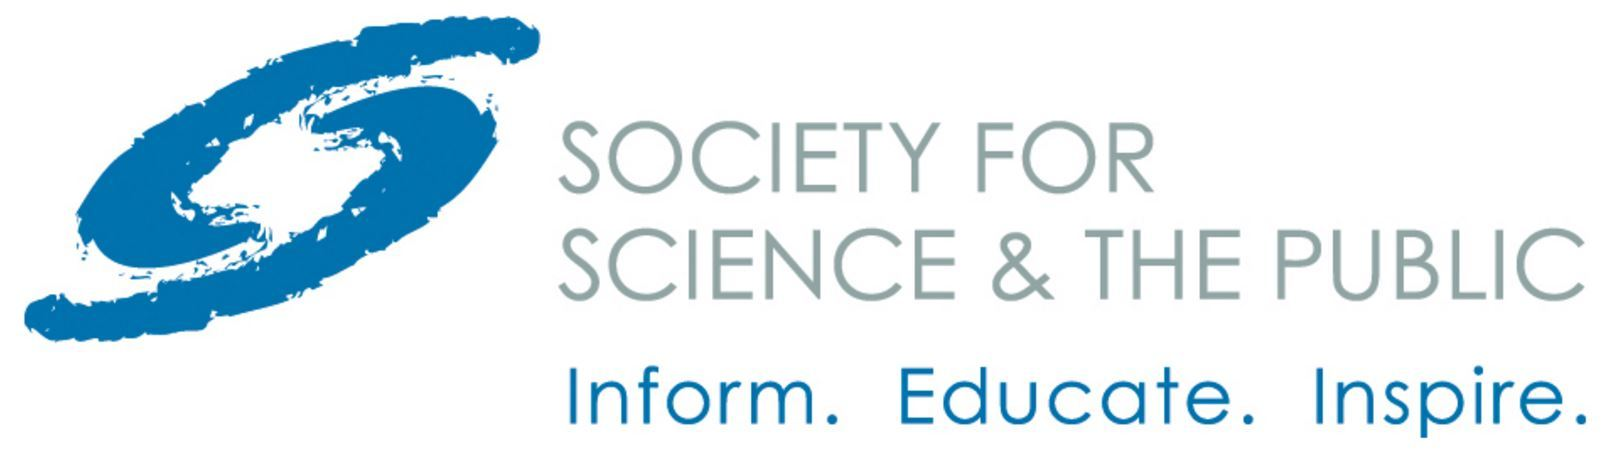 society for science and the public, AMAVET, partneri, logo